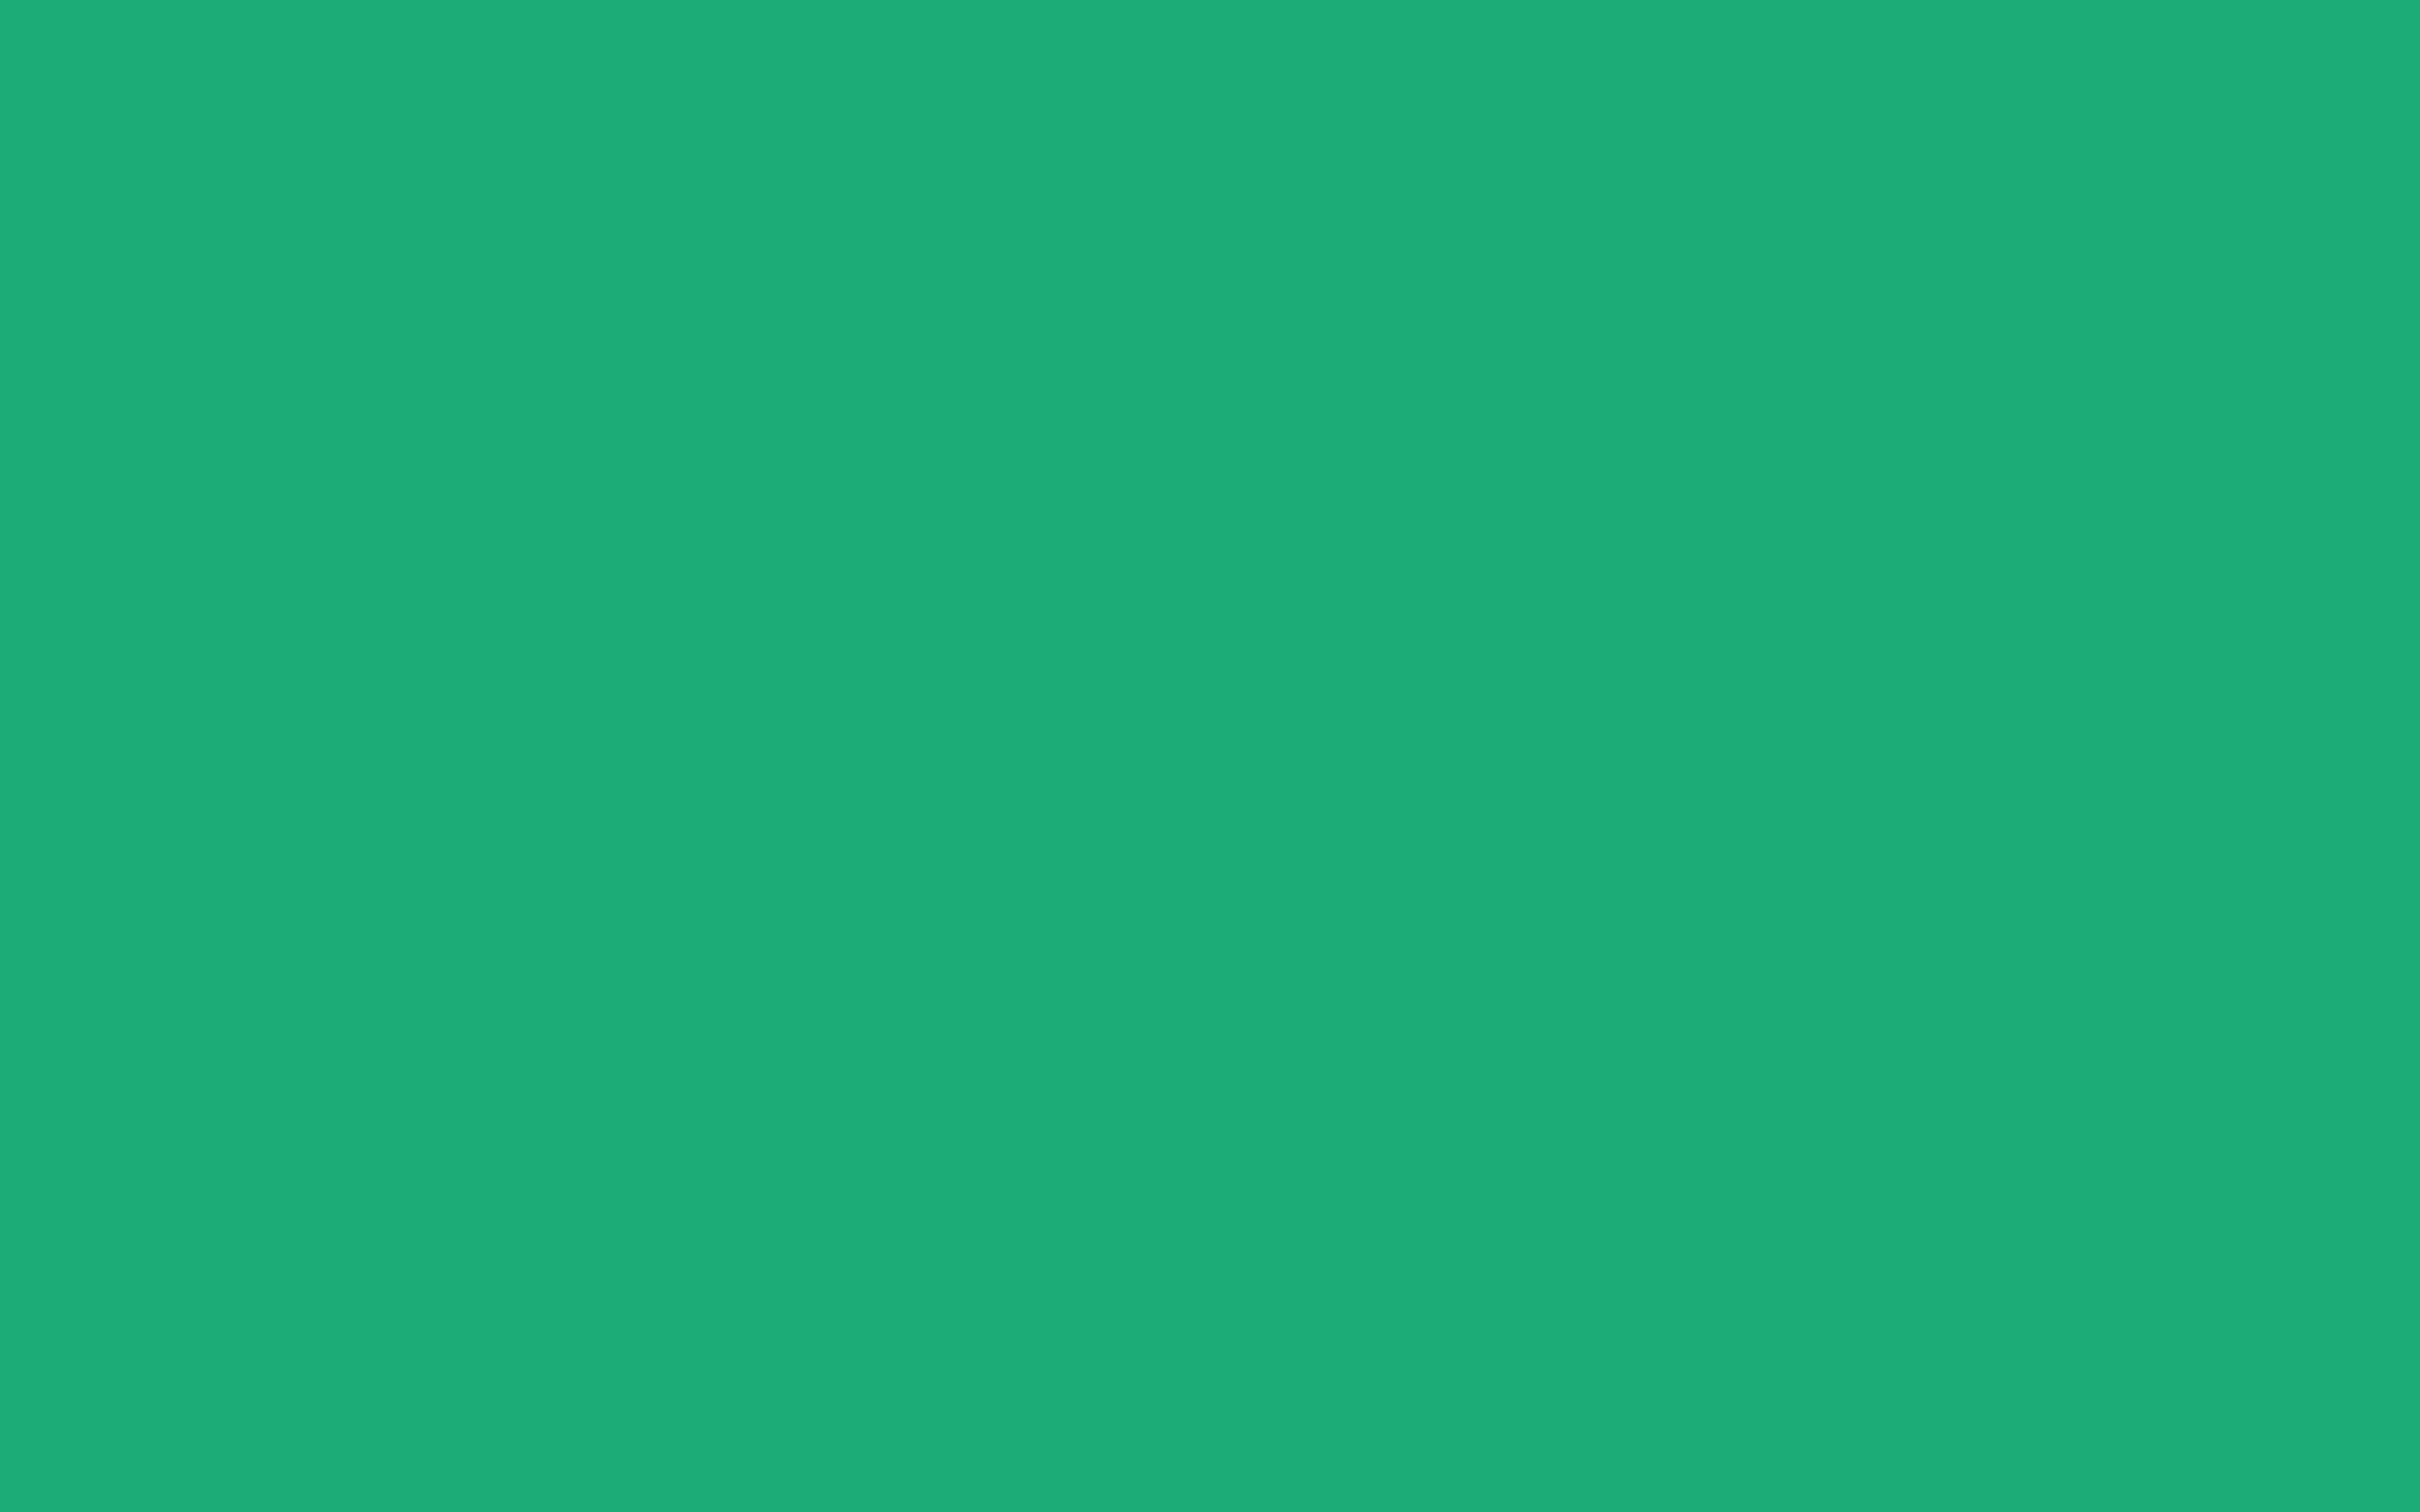 2560x1600 Green Crayola Solid Color Background